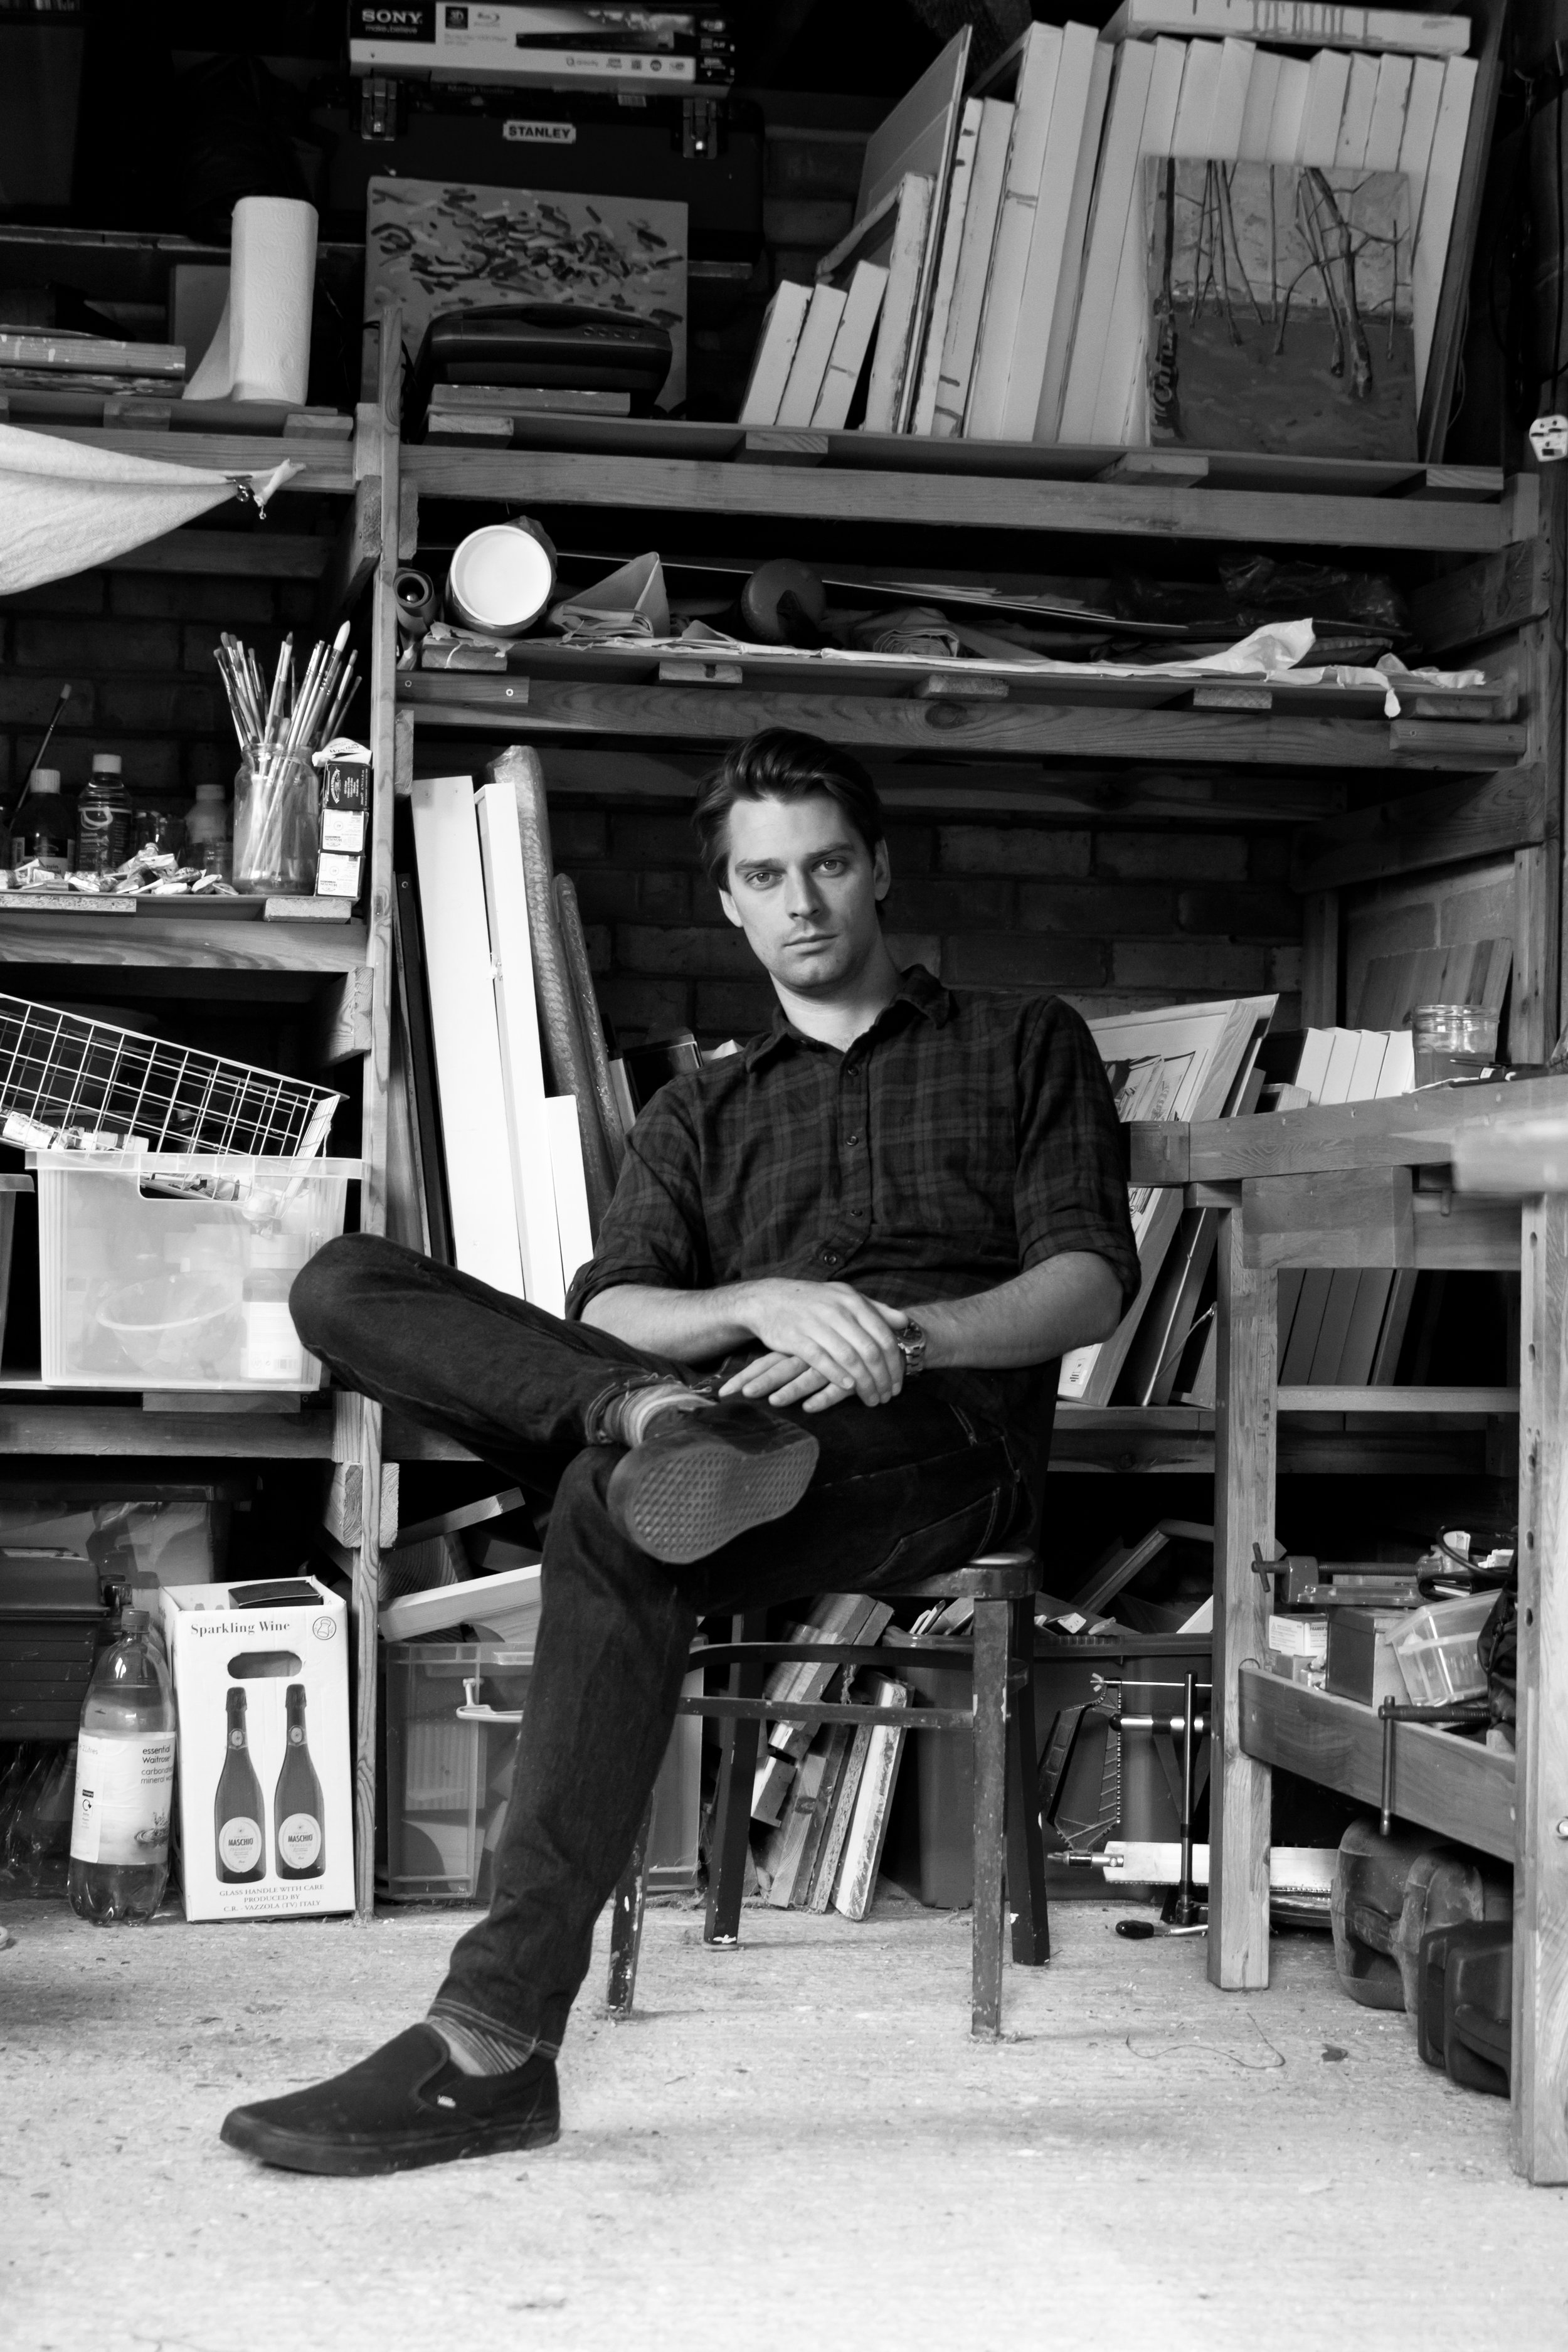 A portrait of the artist in his studio. By Hutch for the EADT.